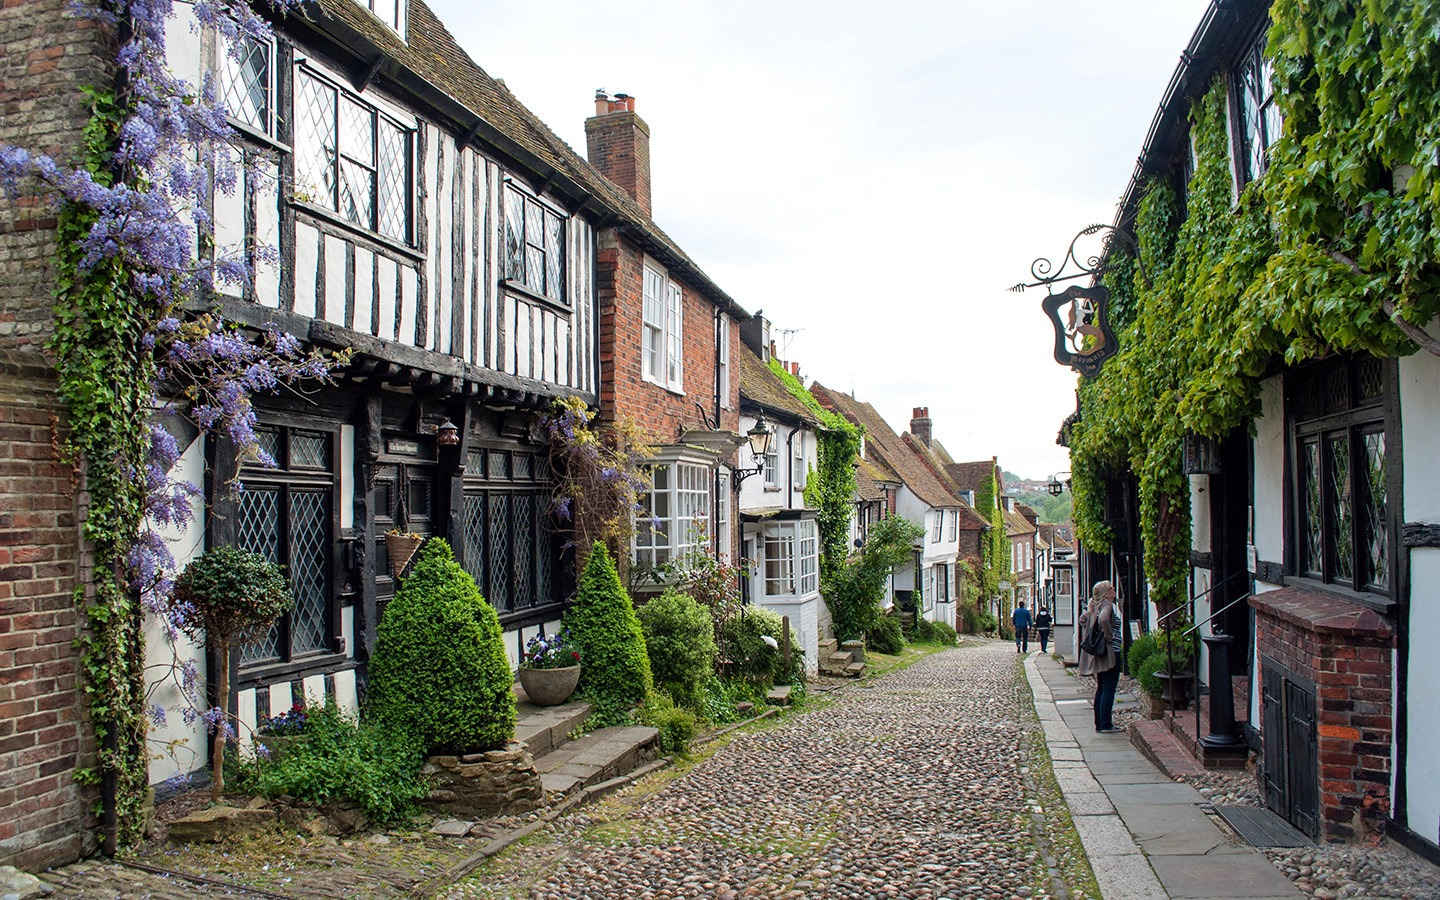 Mermaid Street in Rye, East Sussex